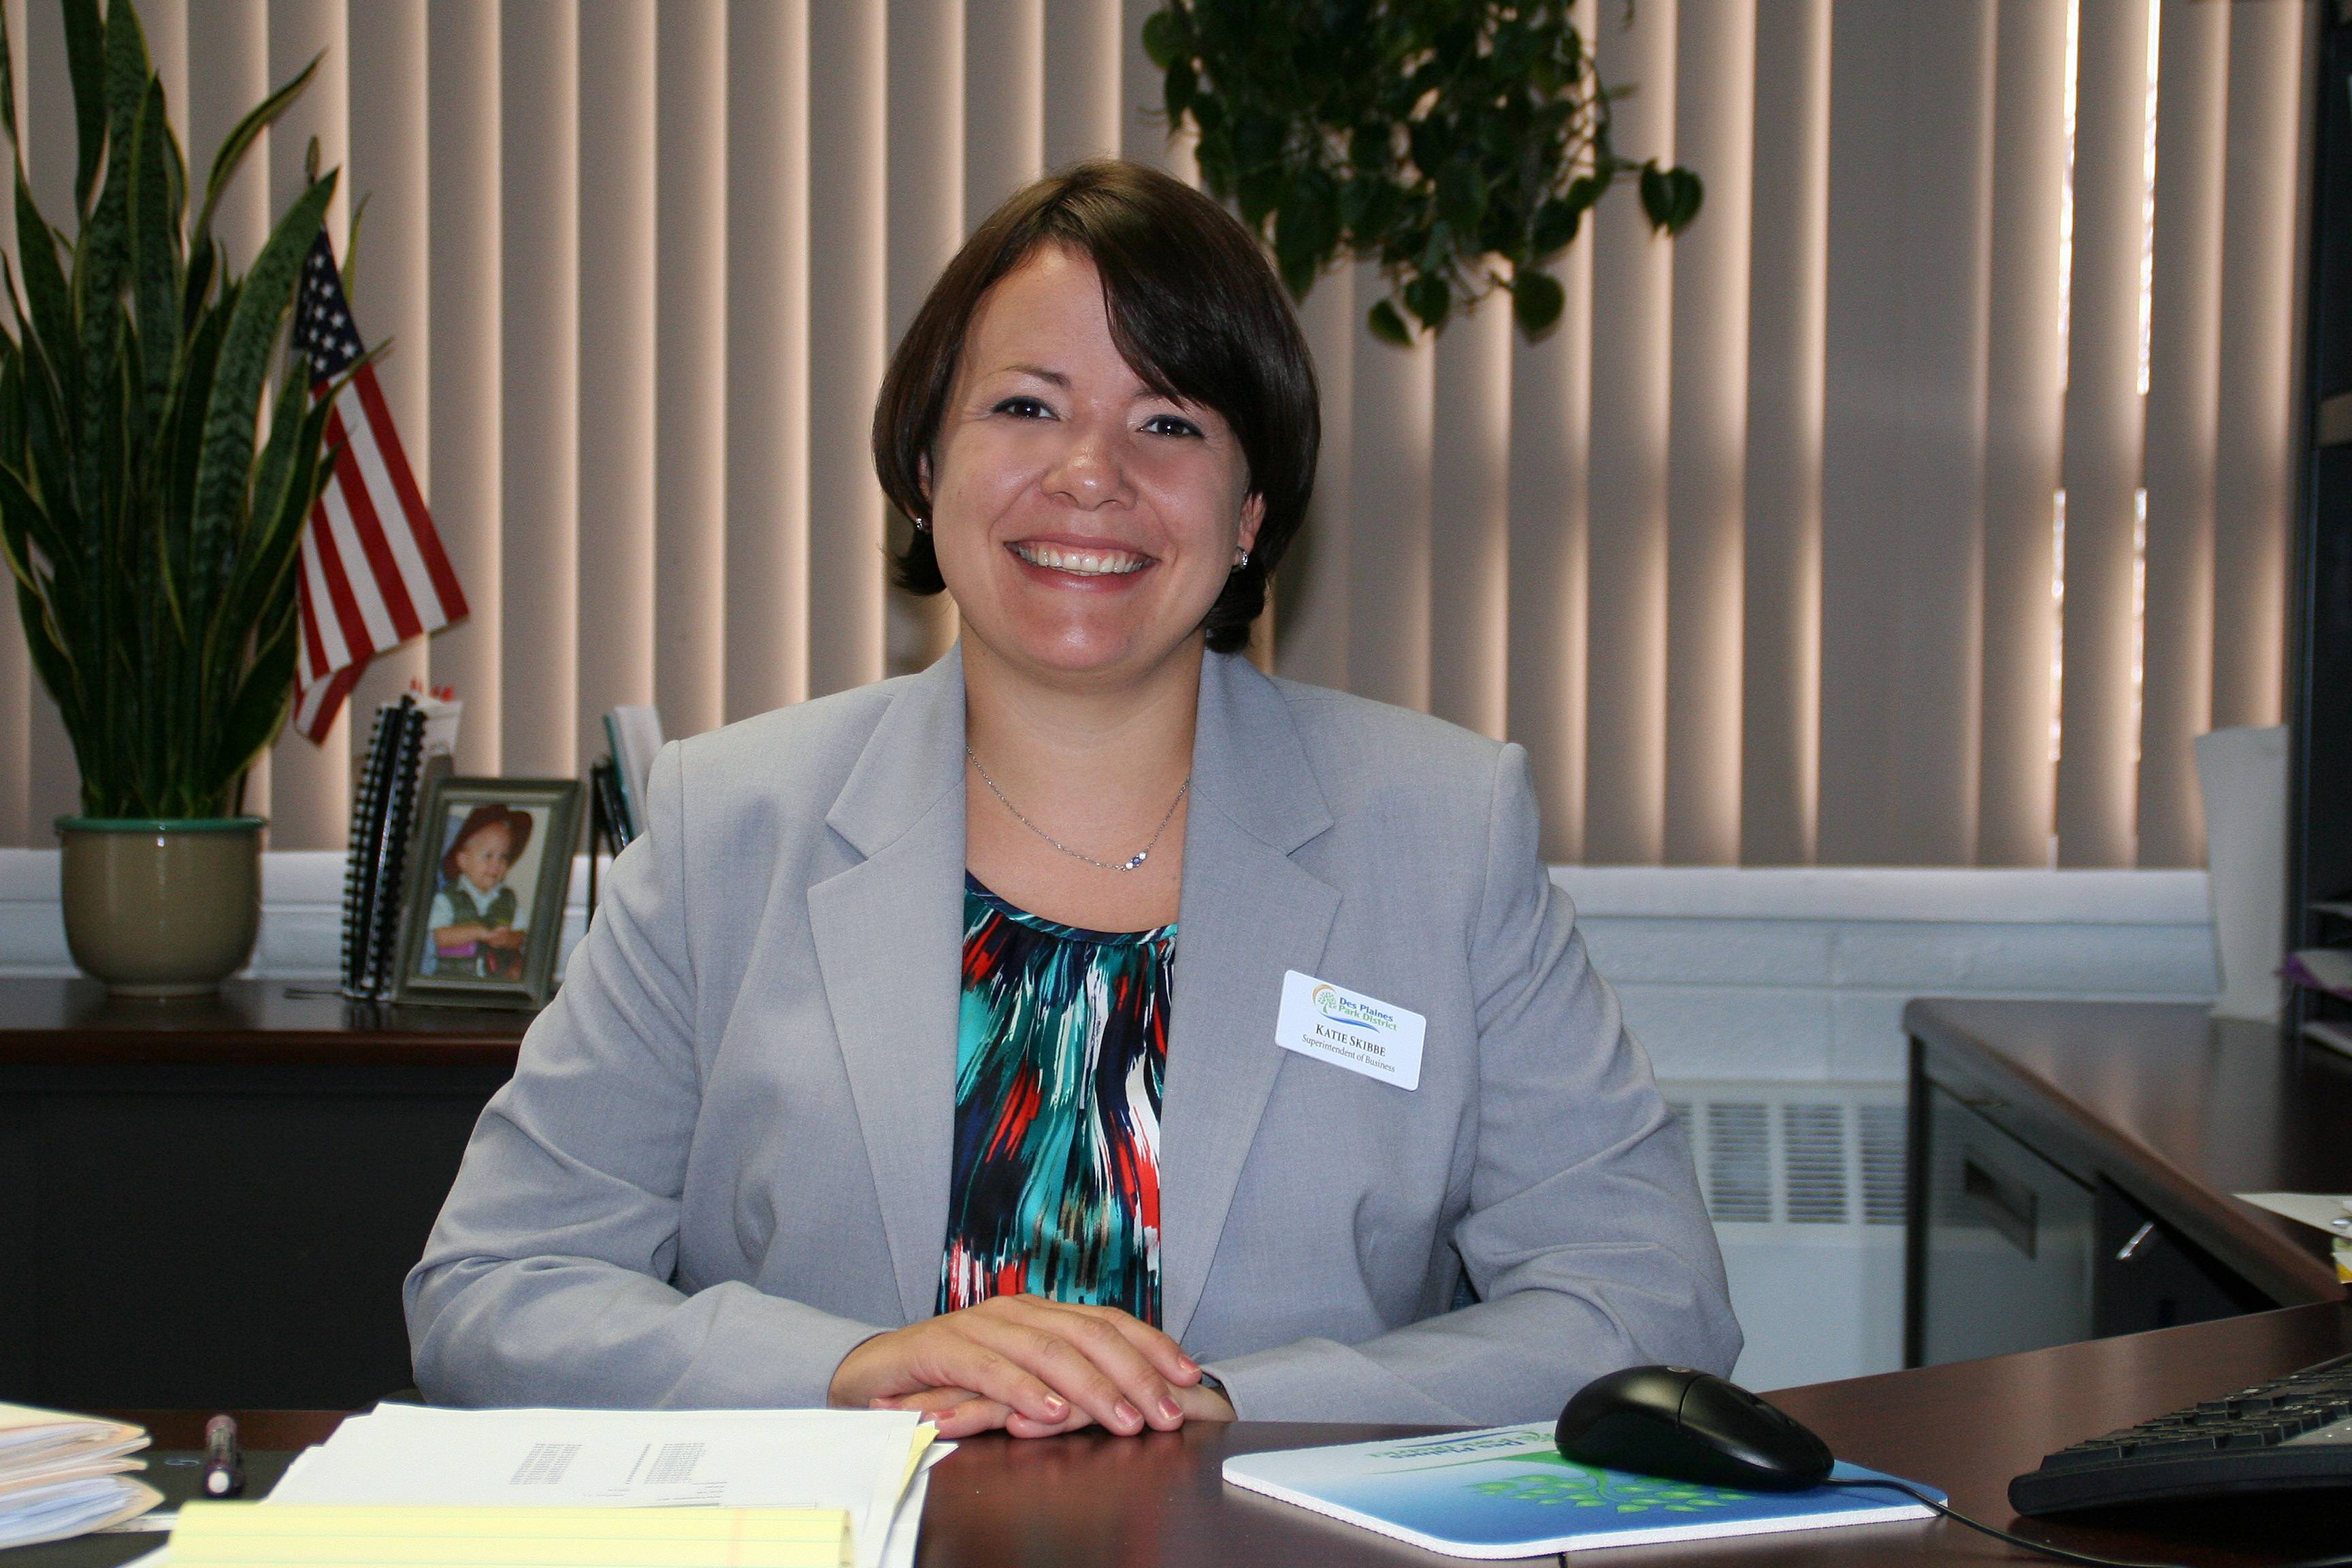 Katie Skibbe, the new Superintendent of Business effective May 1.Lisa Haring